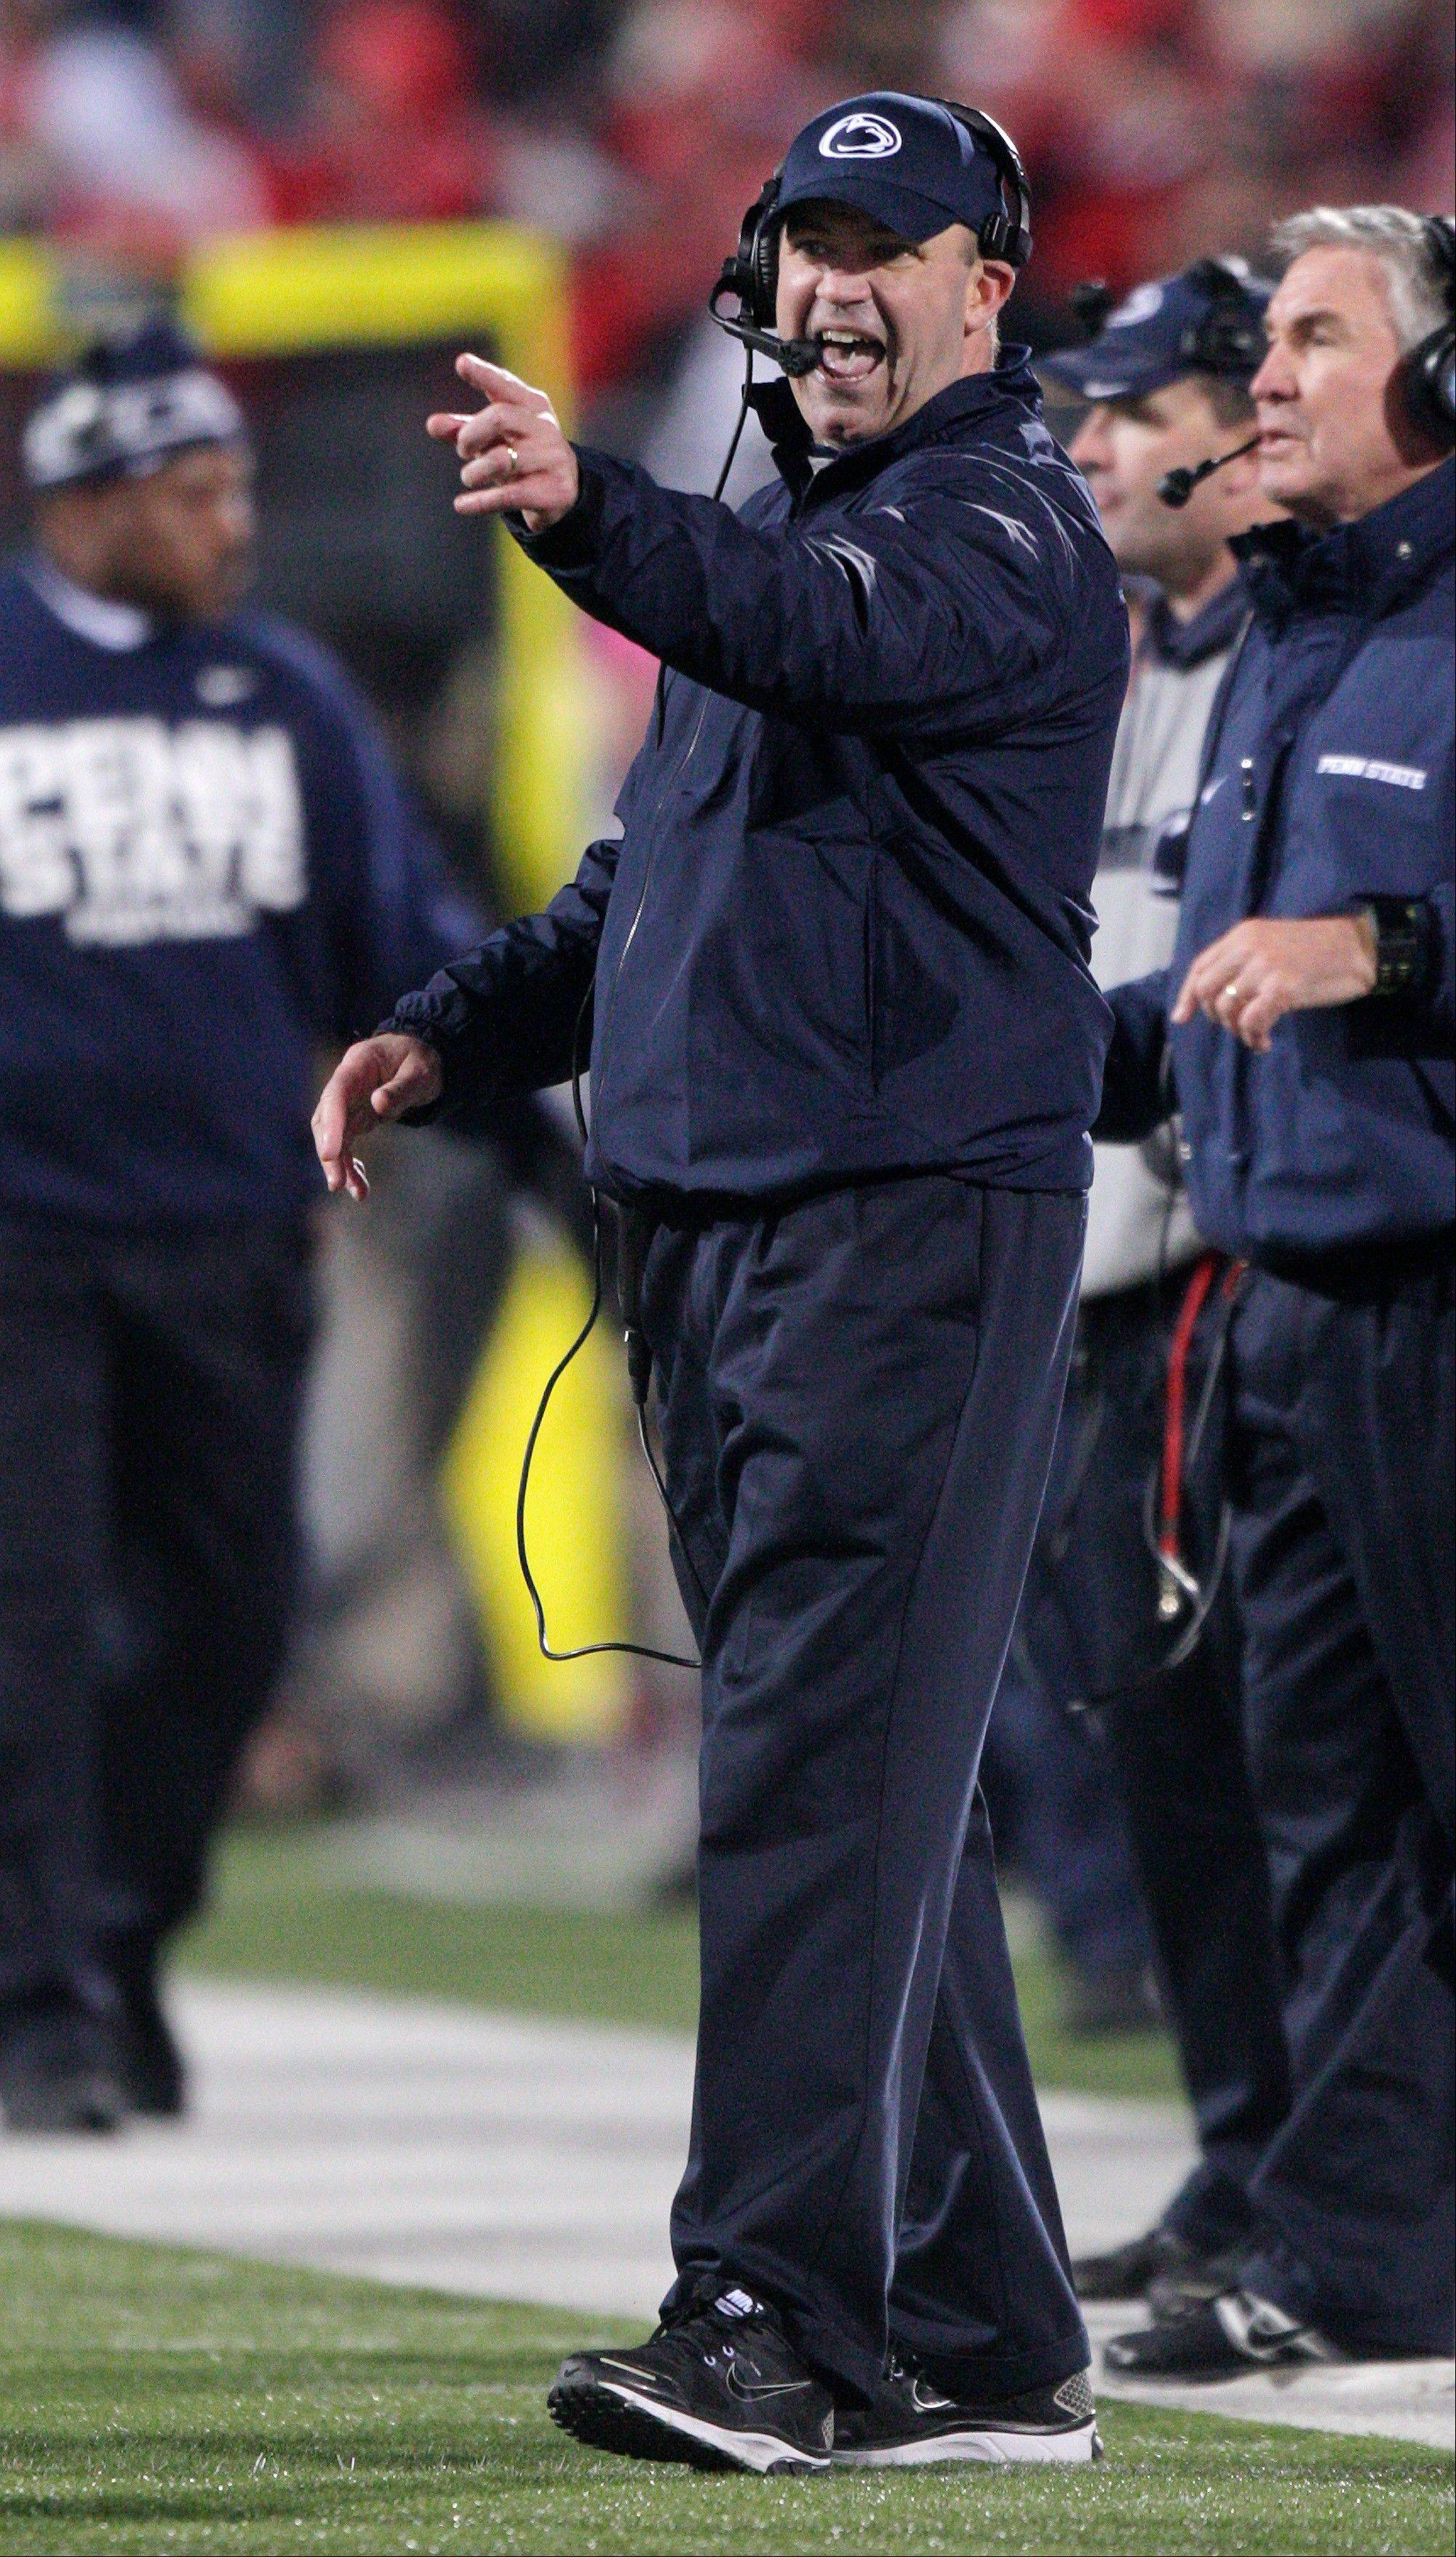 Penn St. coach defensive about shaky defense